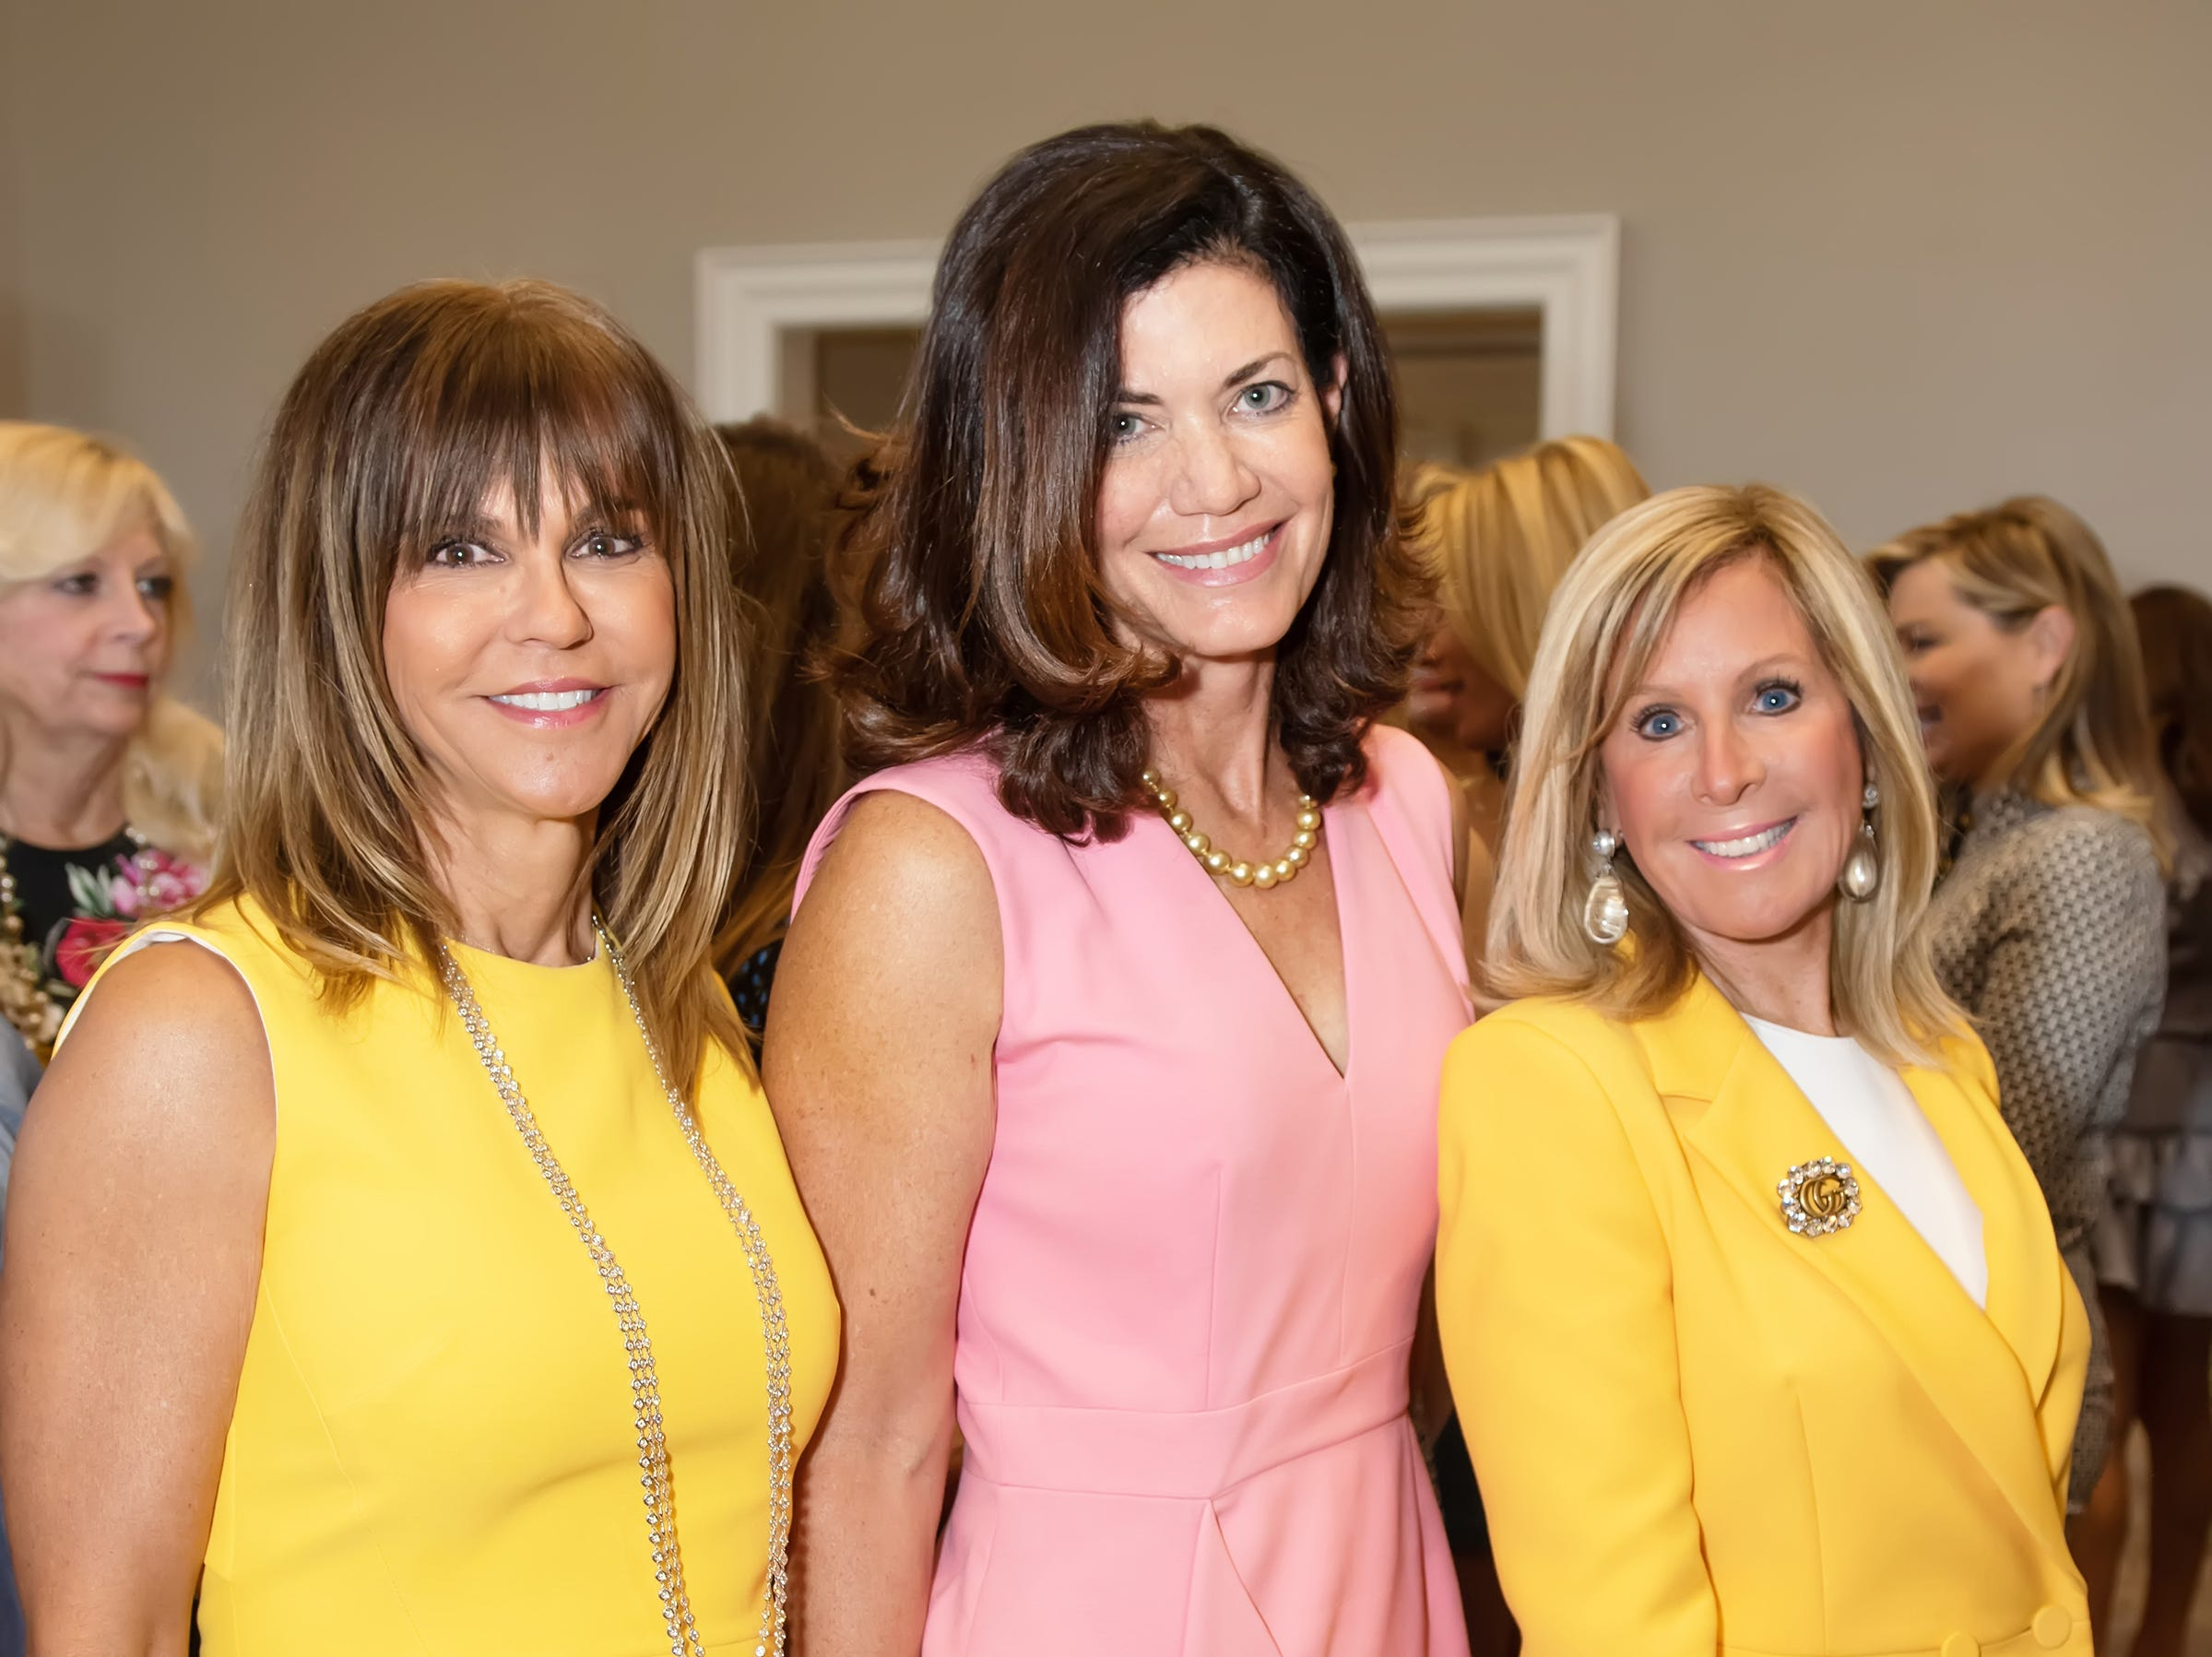 Soula Rifkin, left, Suzanne Carrol and Debbie Ernst at the Golden Heart Luncheon in Palm Beach Gardens.